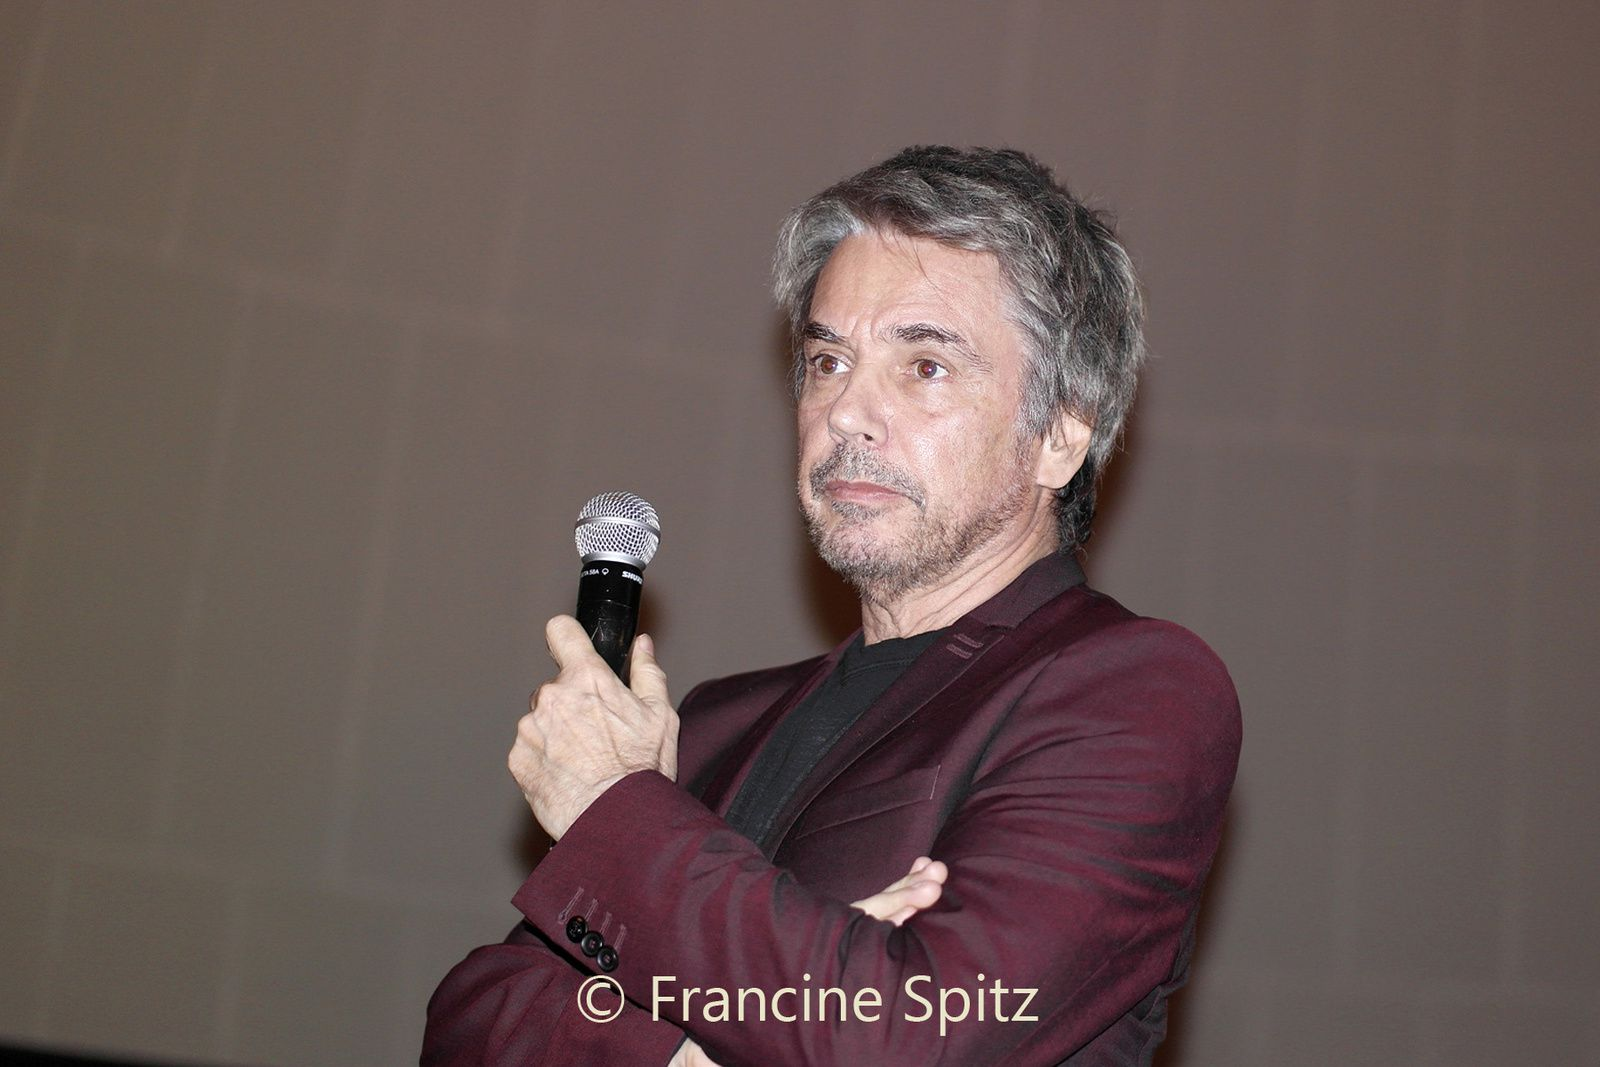 JEAN-MICHEL JARRE, discussion au Planétarium du Palais de la Découverte (23/11/2016)